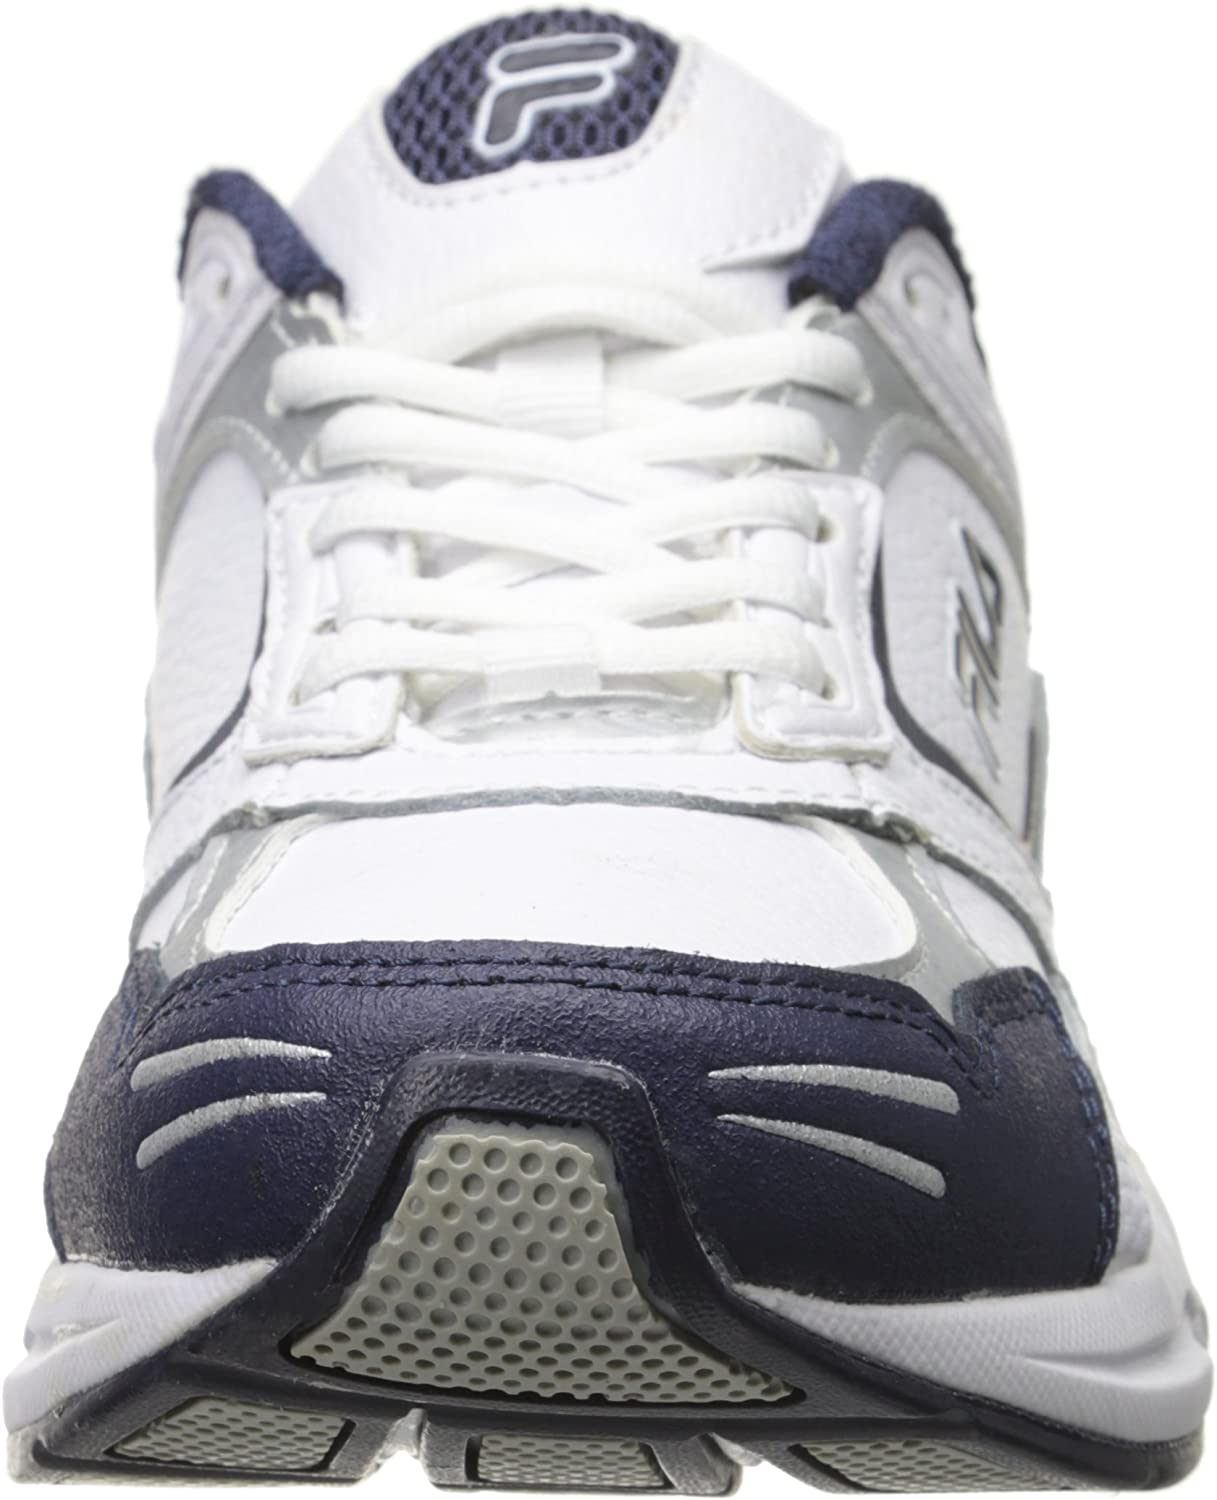 Fila Men's DECIMUS 3-M White/Navy/Metallic Silver